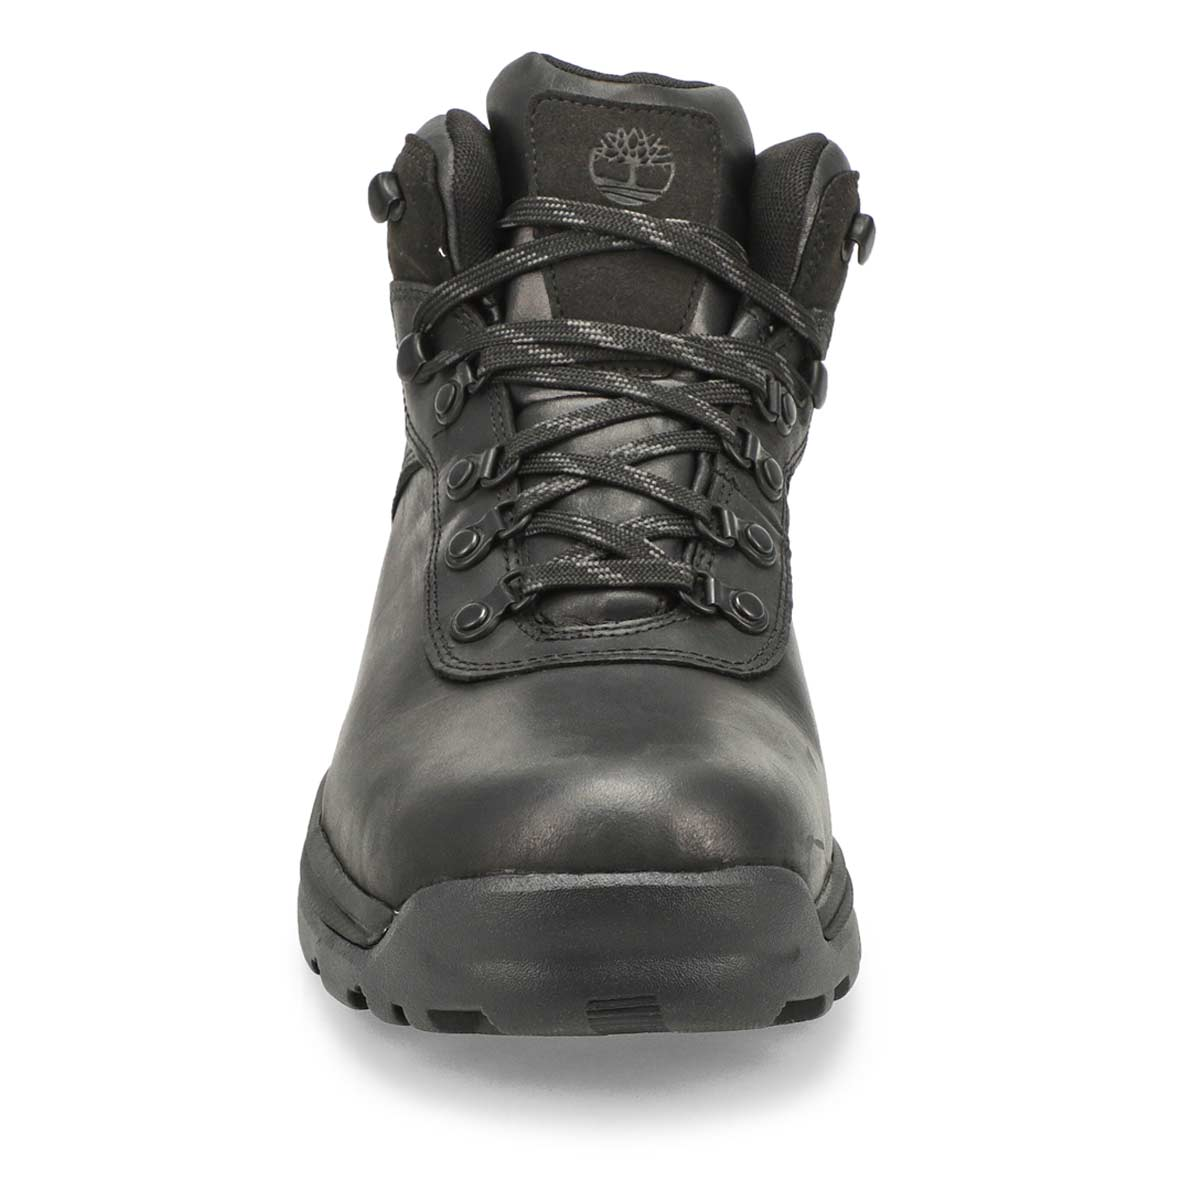 Mns Flume Mid blk wp lace up ankle boot